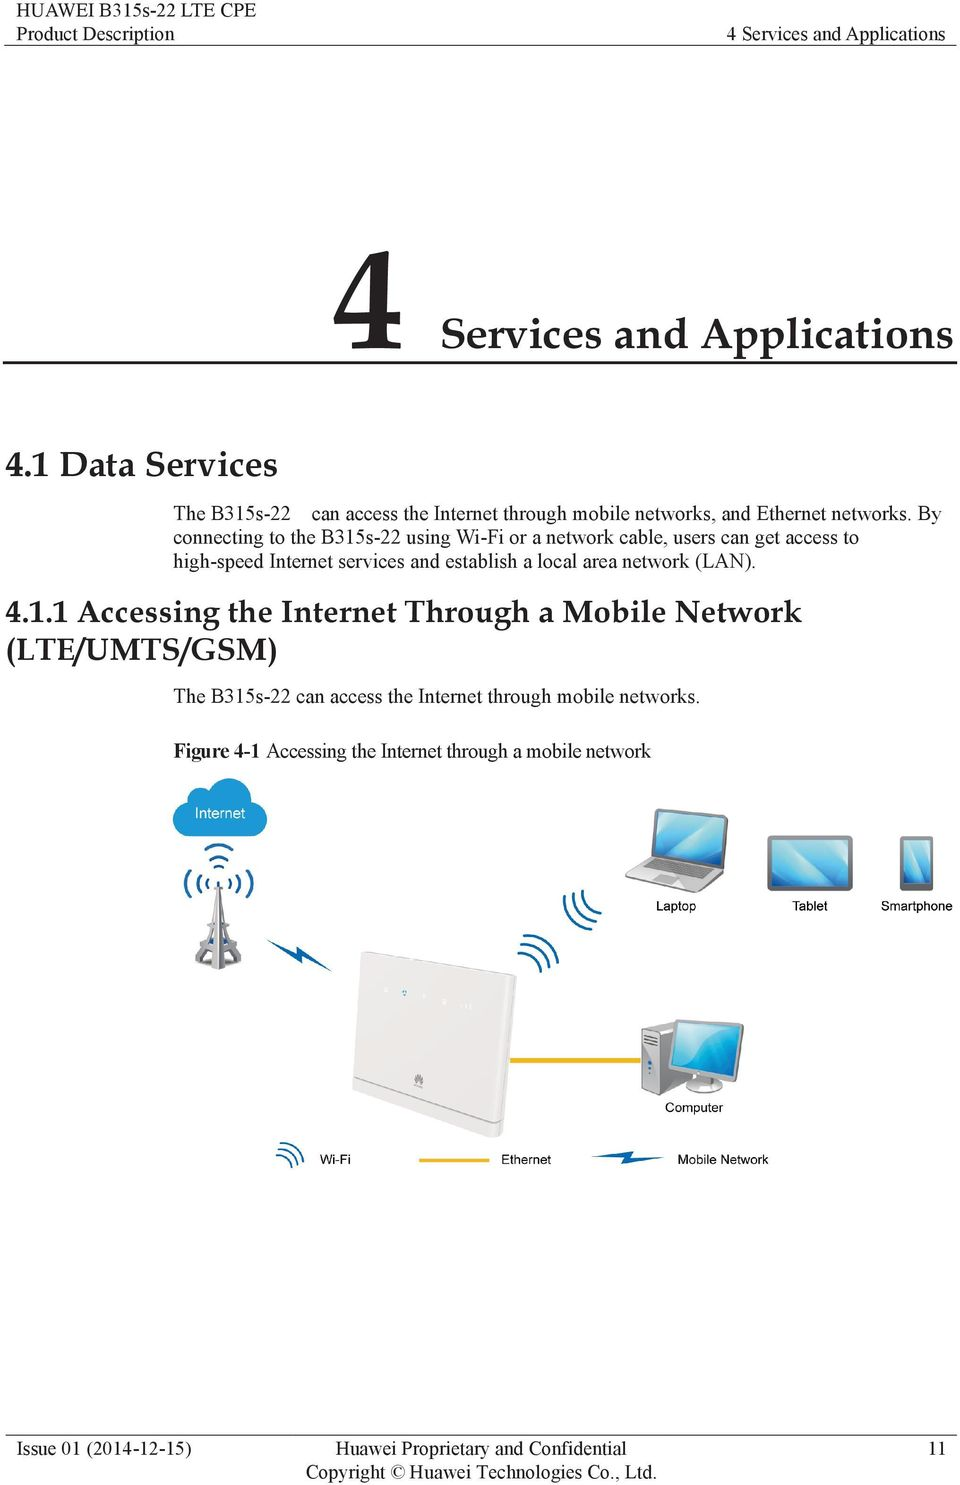 By connecting to the B315s-22 using Wi-Fi or a network cable, users can get access to high-speed Internet services and